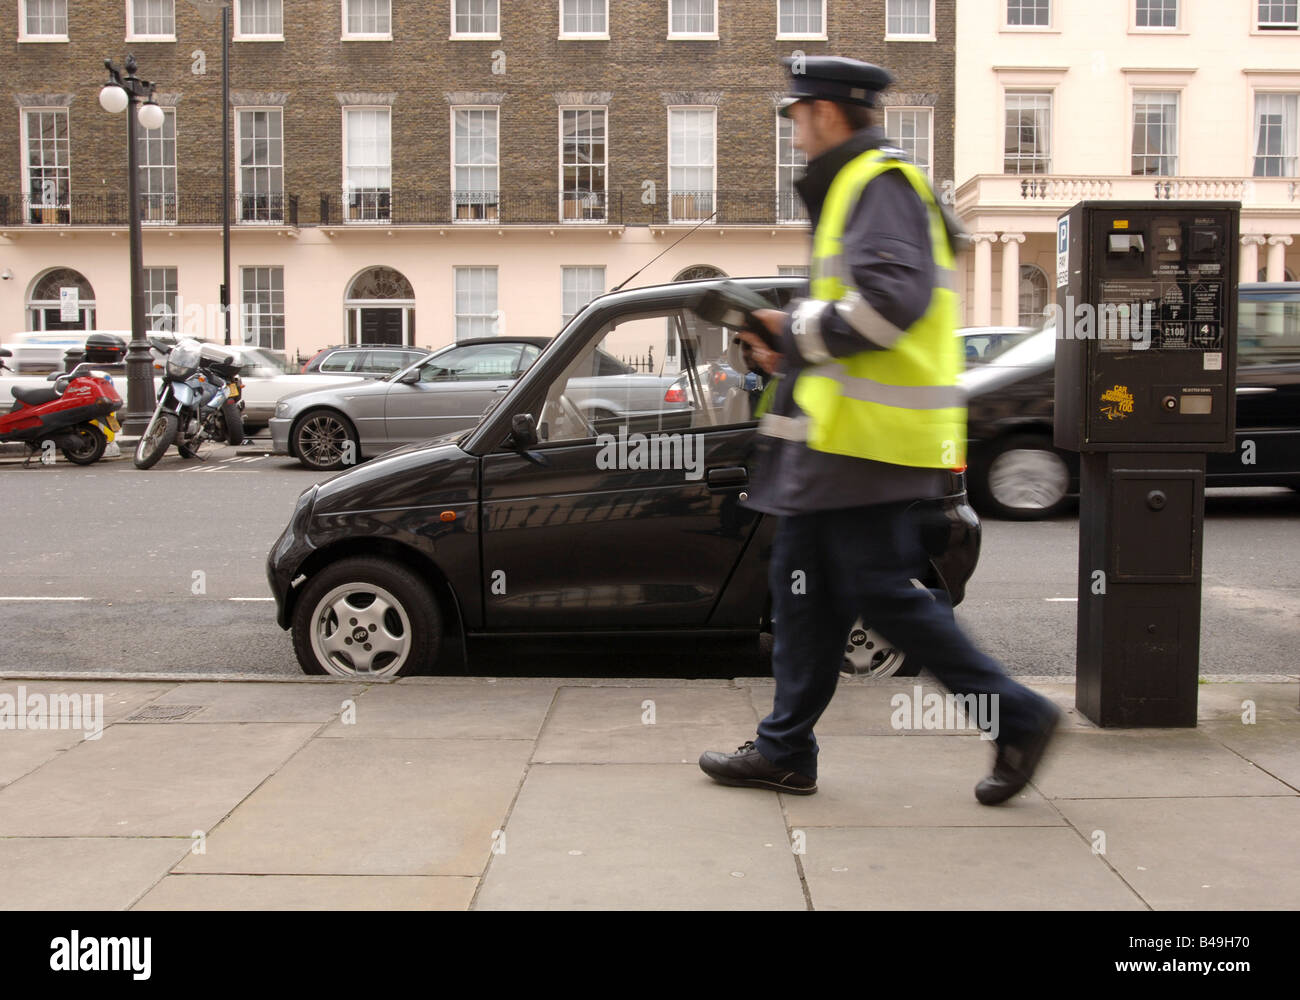 G-Wiz electric car parked for free in London, ignored by a traffic warden despite having no parking ticket - Stock Image